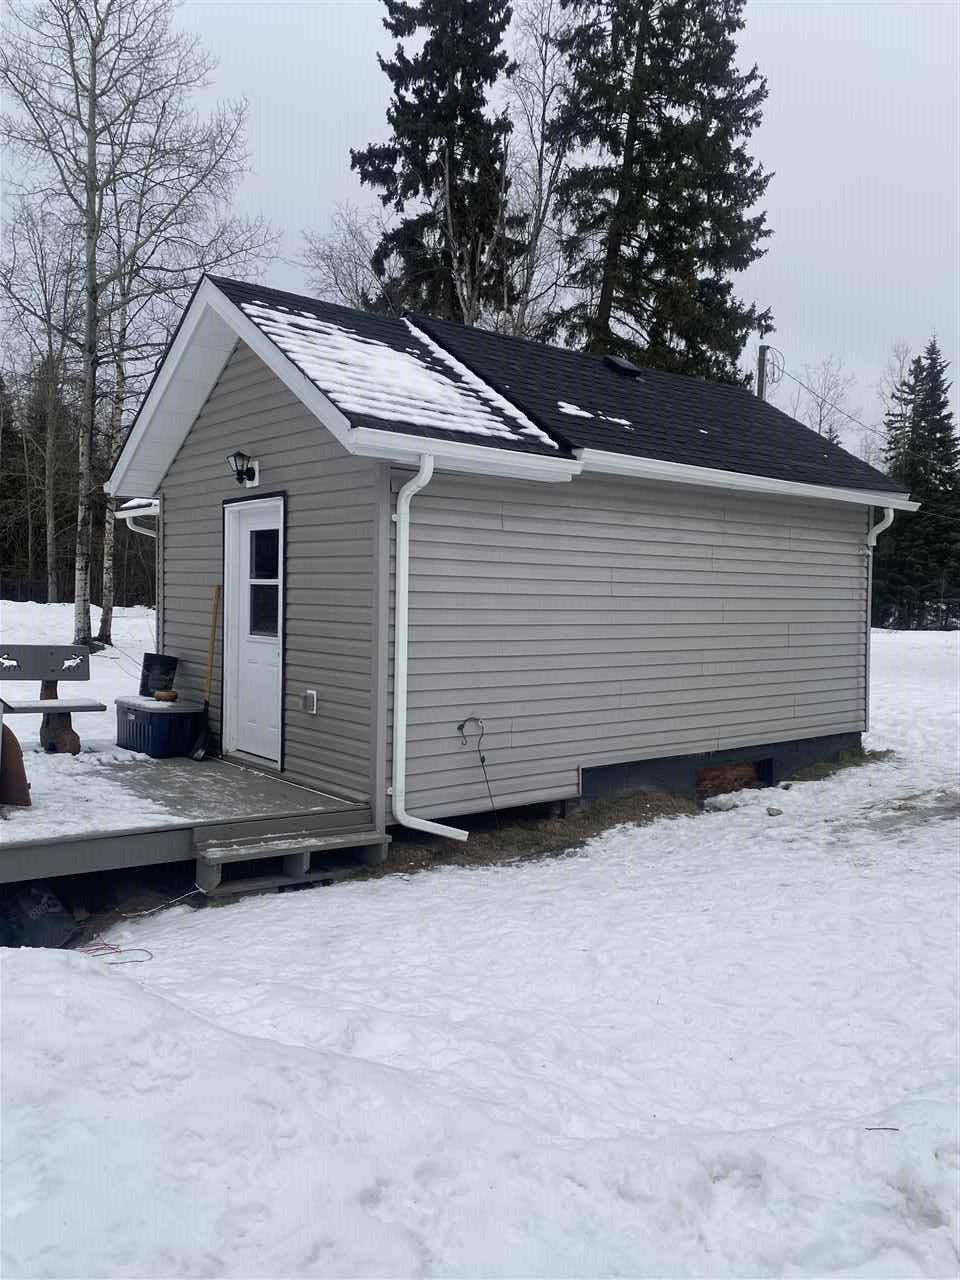 Photo 8: Photos: 9020 - 9100 GISCOME Road in Prince George: Tabor Lake House for sale (PG Rural East (Zone 80))  : MLS®# R2524970